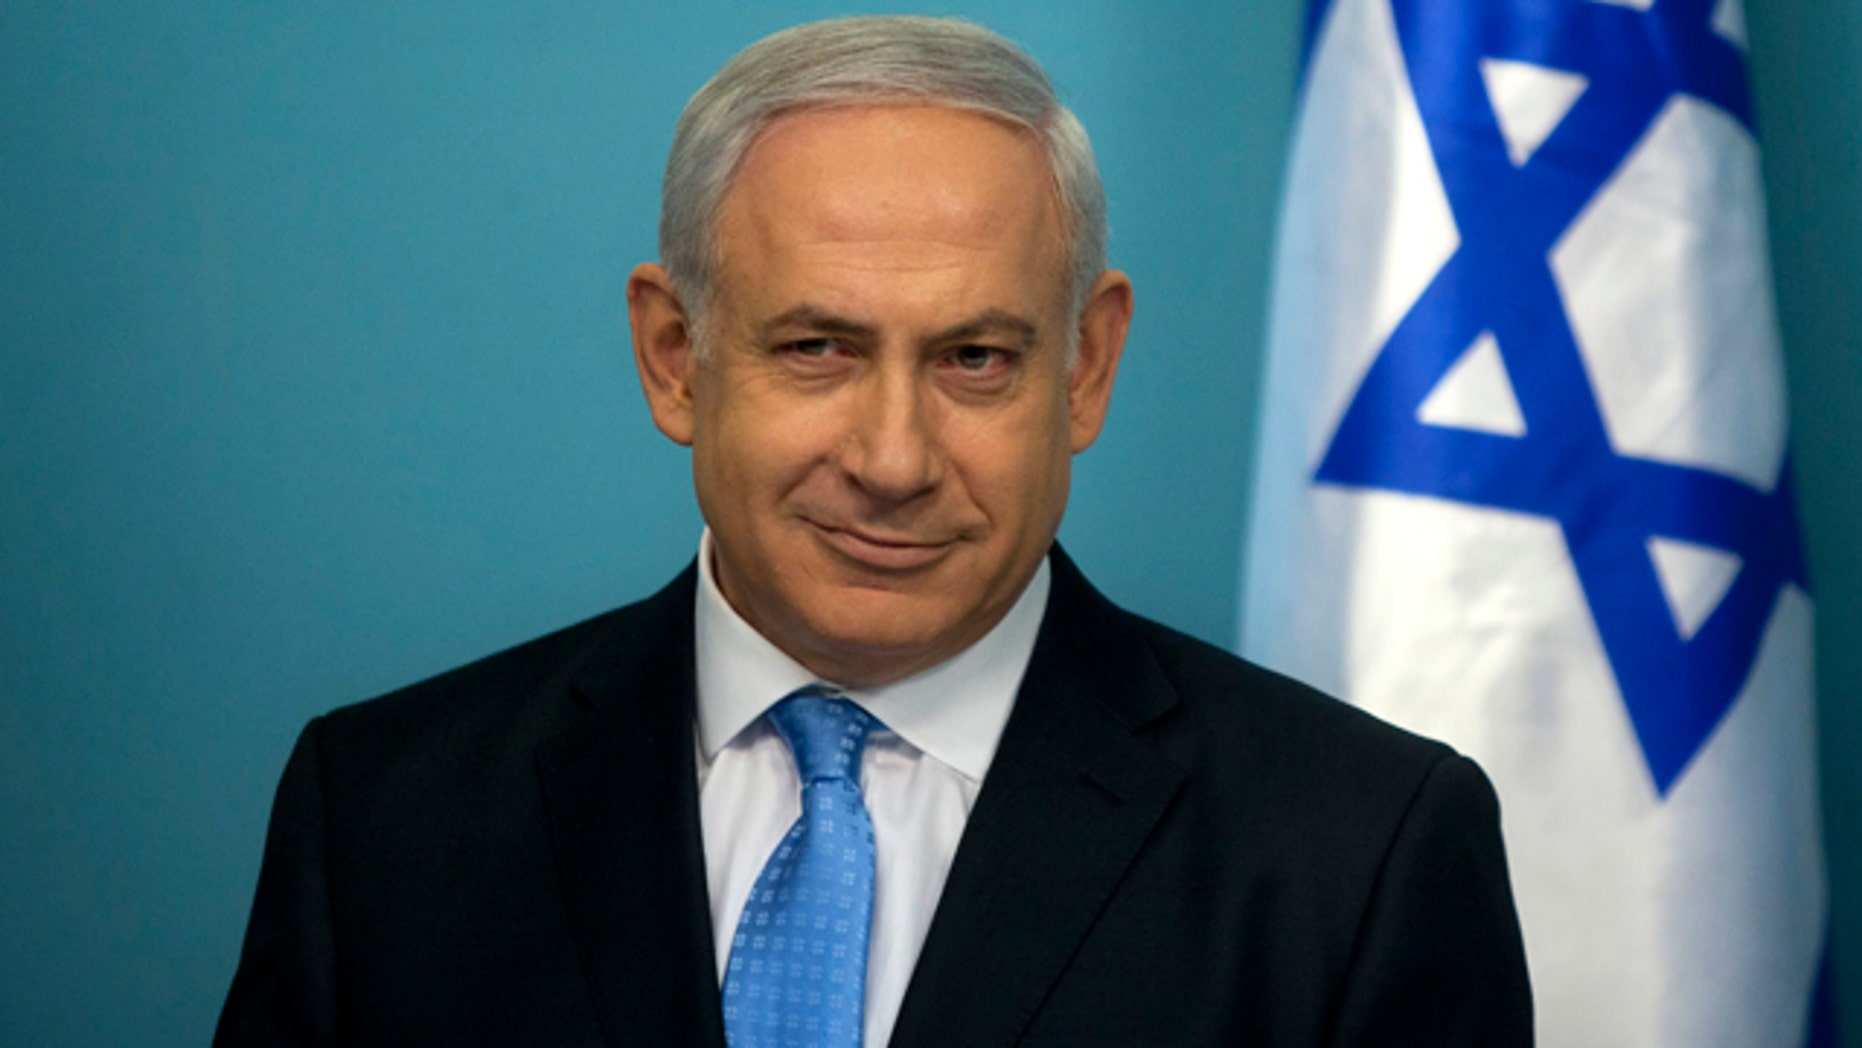 May 18: Israeli Prime Minister Benjamin Netanyahu during a press conference in his office in Jerusalem.